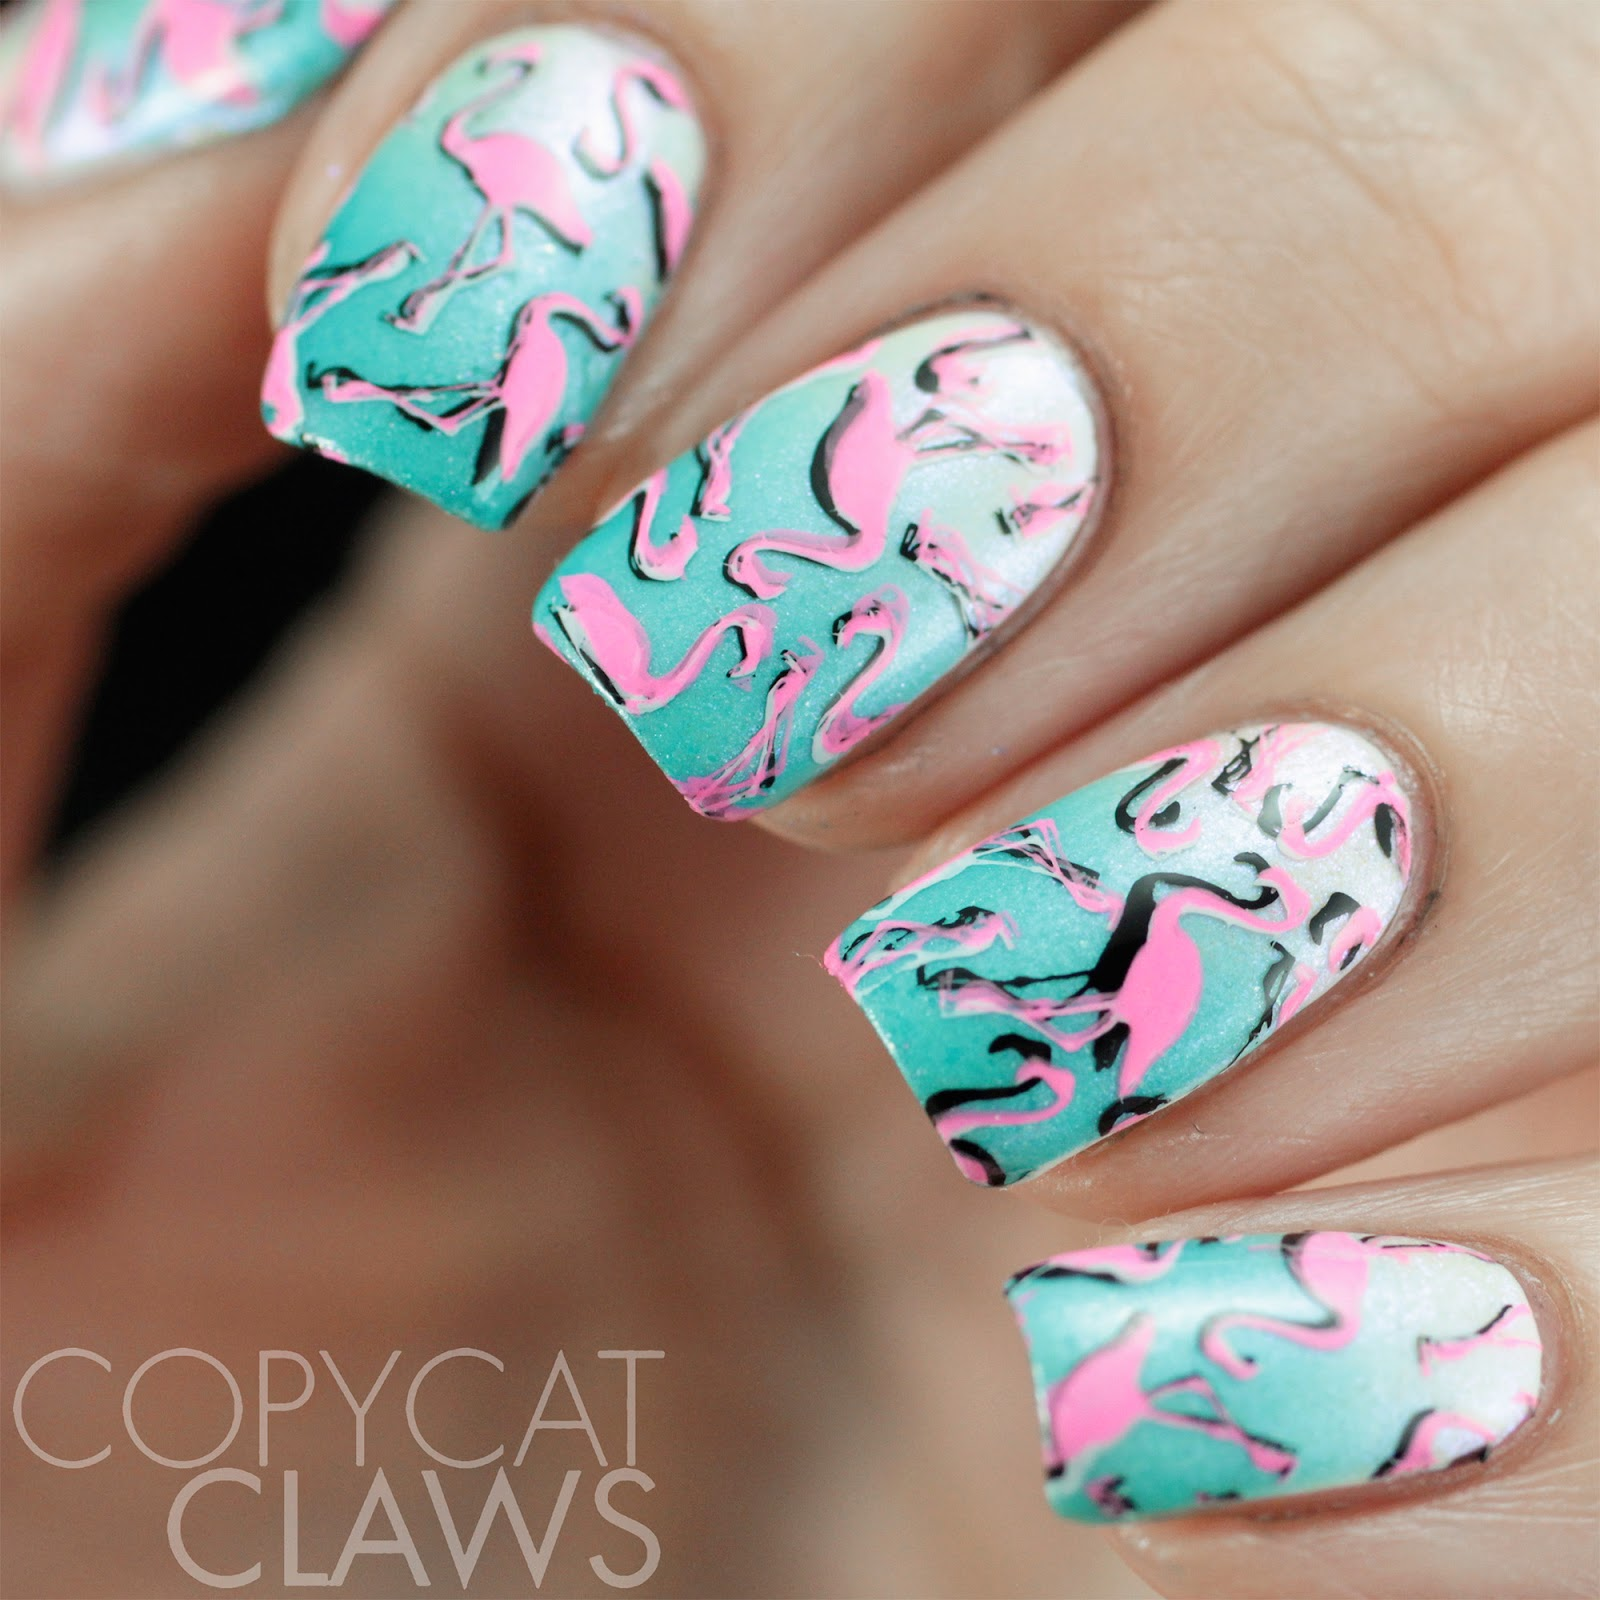 Copycat claws lina nail art supplies summer 02 and make your mark 05 i did my second mani while i was swatching the illyrian polish spellbind collection that i shared yesterday plus its shark week next week so if you need a prinsesfo Gallery